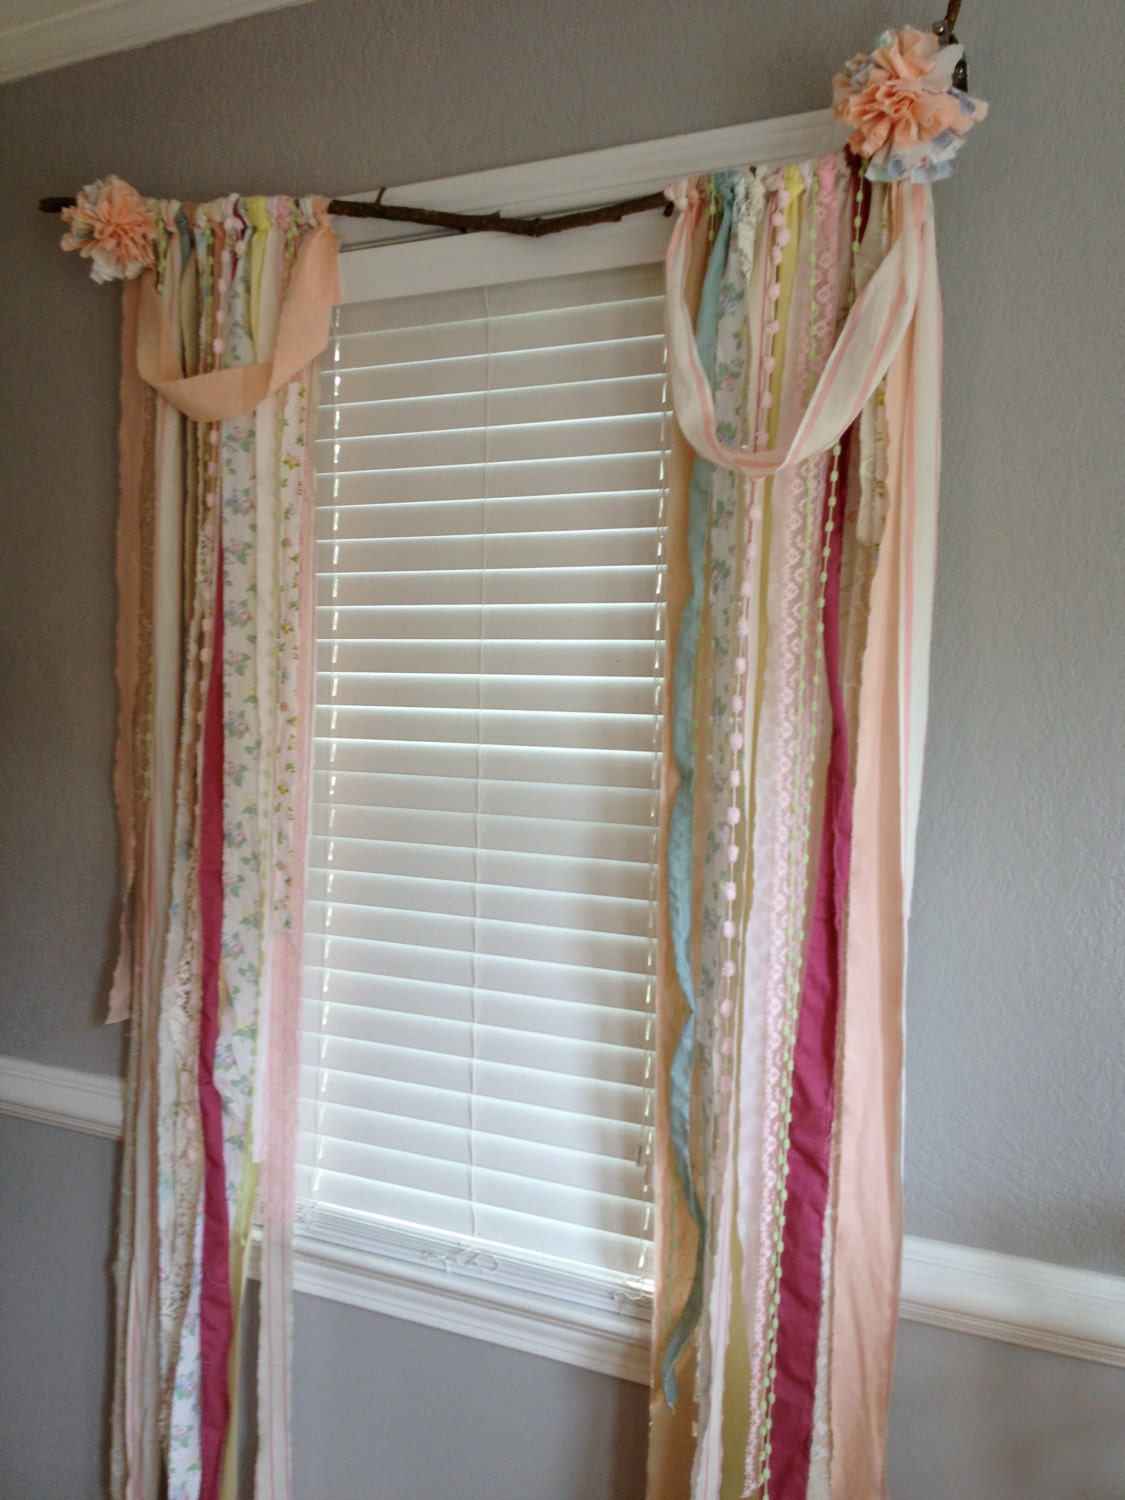 Shabby Chic Rustic Rag Curtain Window Treatment Panels